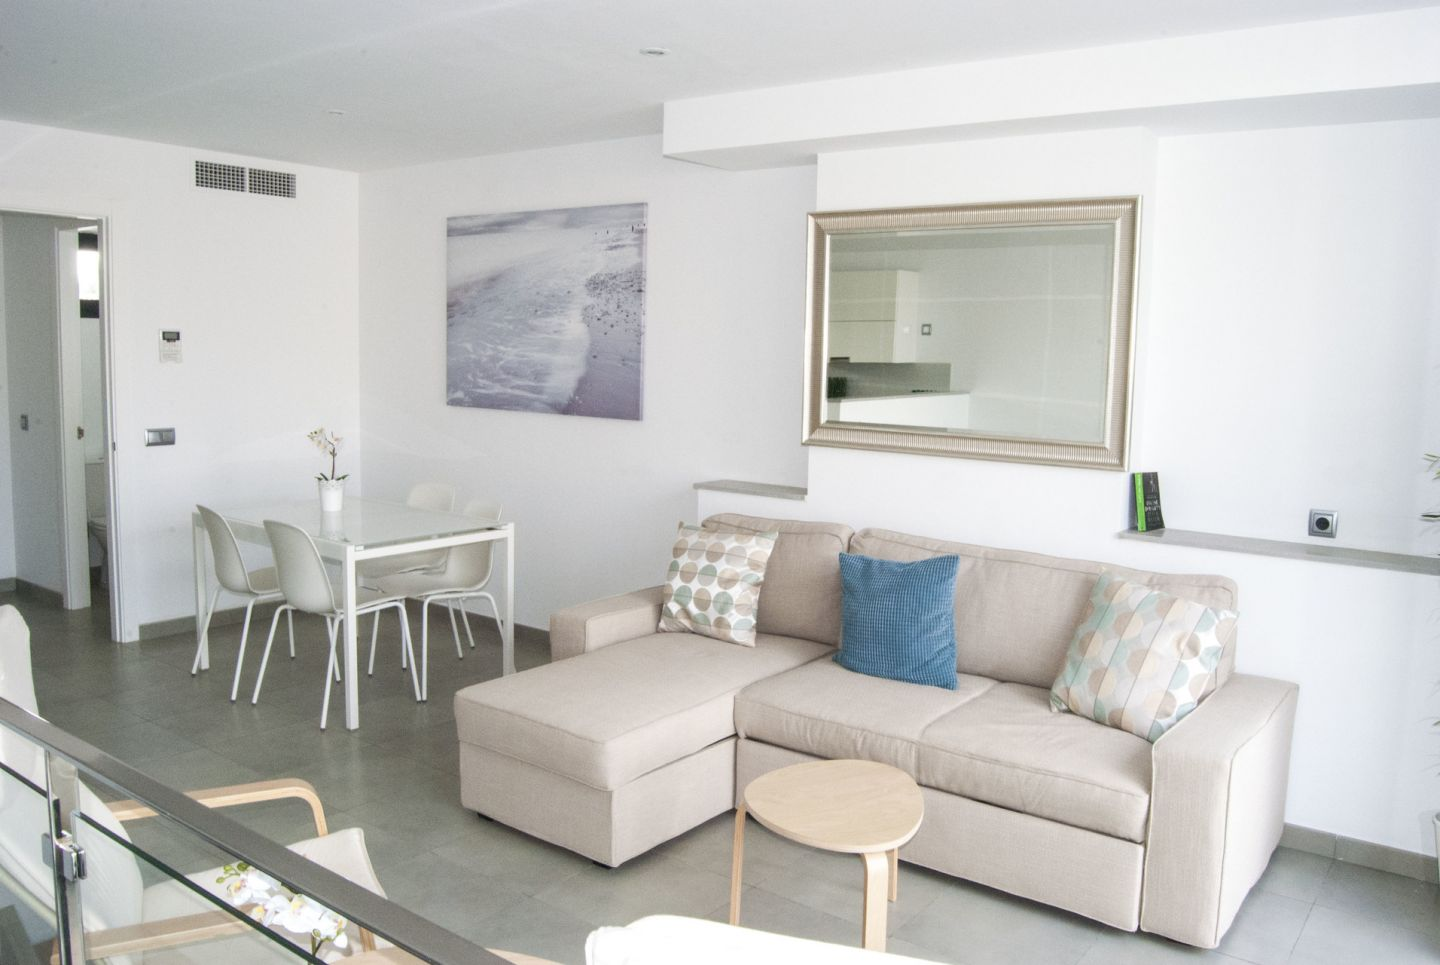 3 Bed Duplex for sale in PUERTO POLLENSA 7